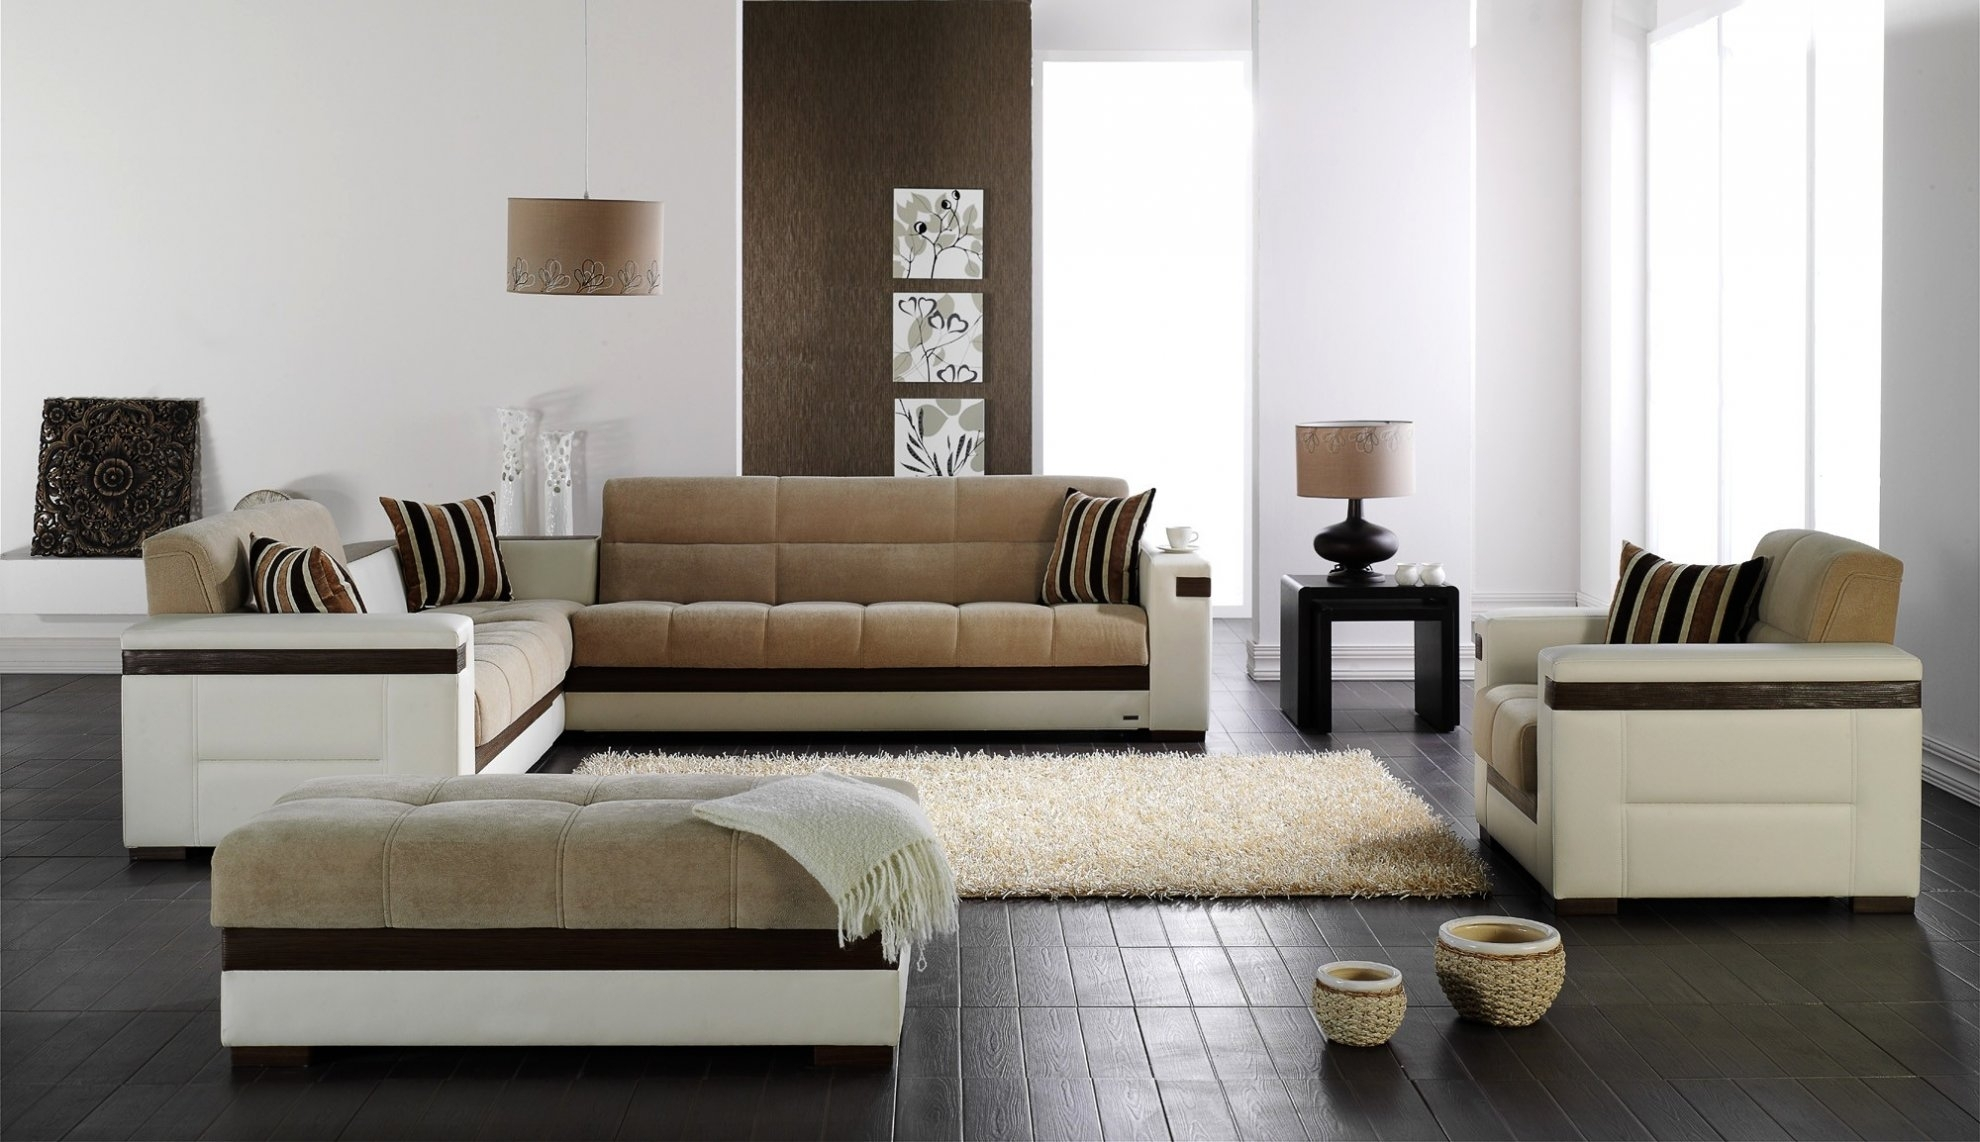 European Sectional Sofas | Ovnblog Within Sectional Sofas From Europe (Image 8 of 10)